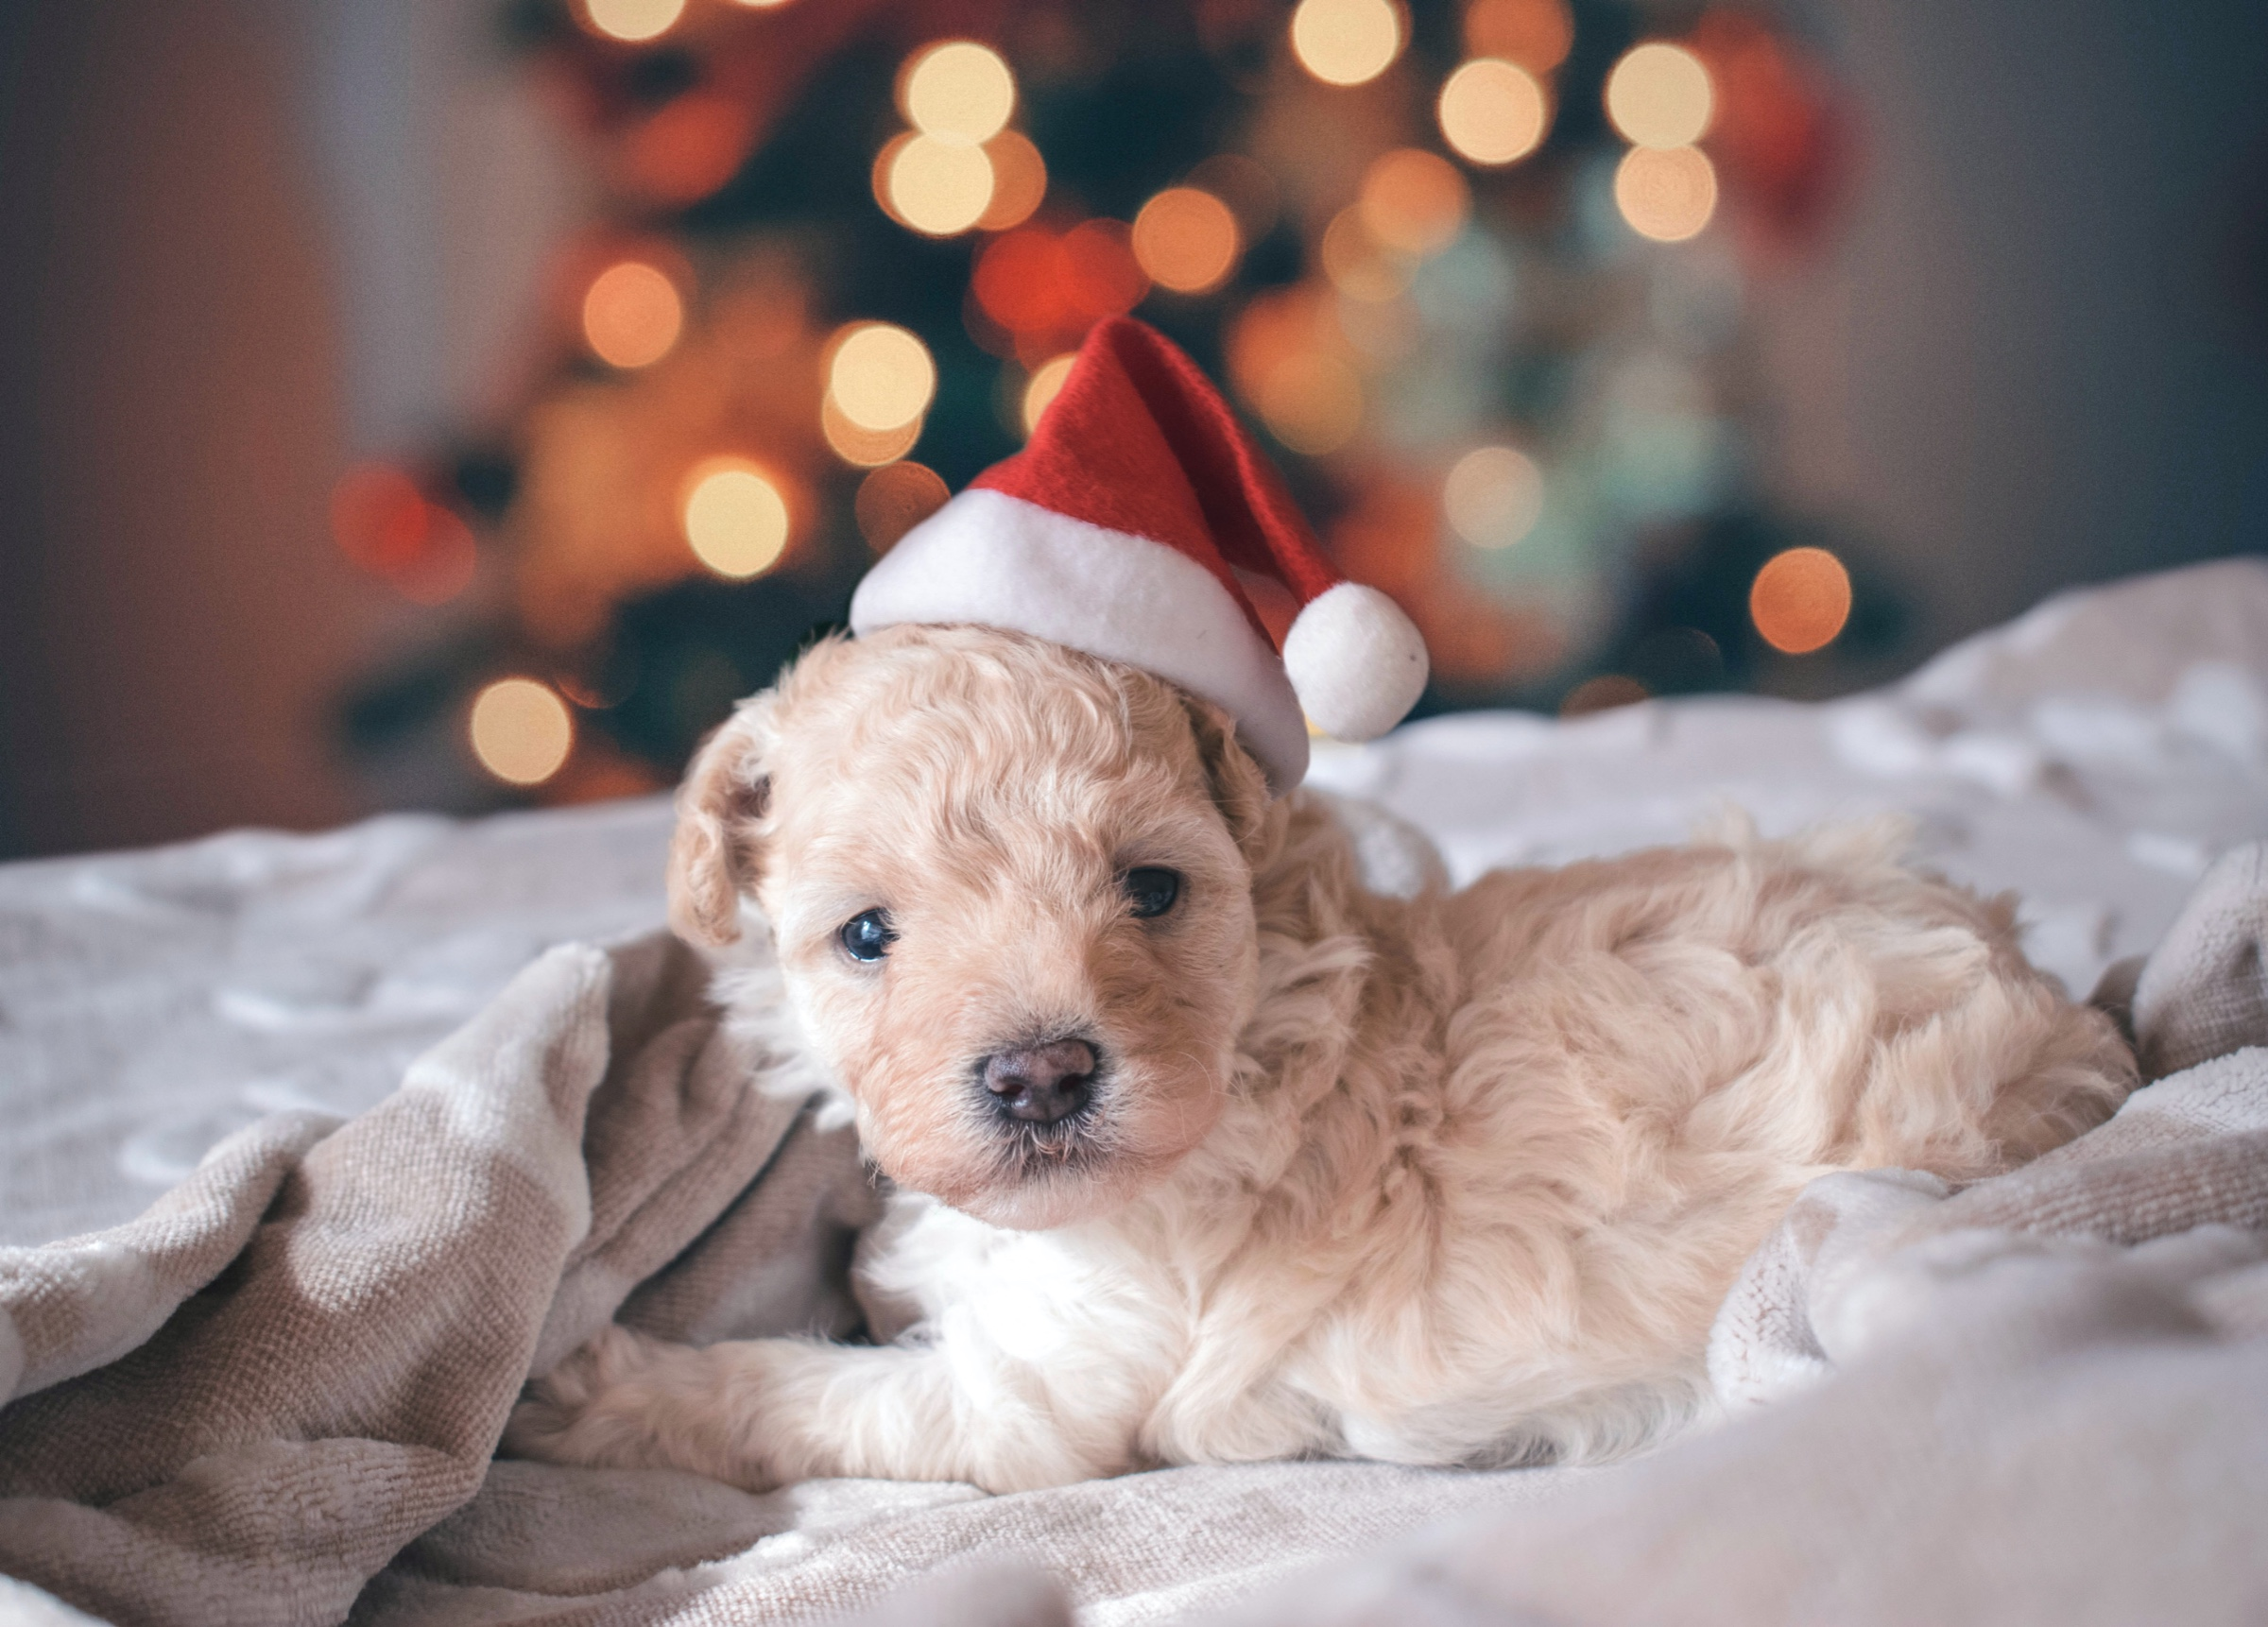 Keeping your dog safe at Christmas